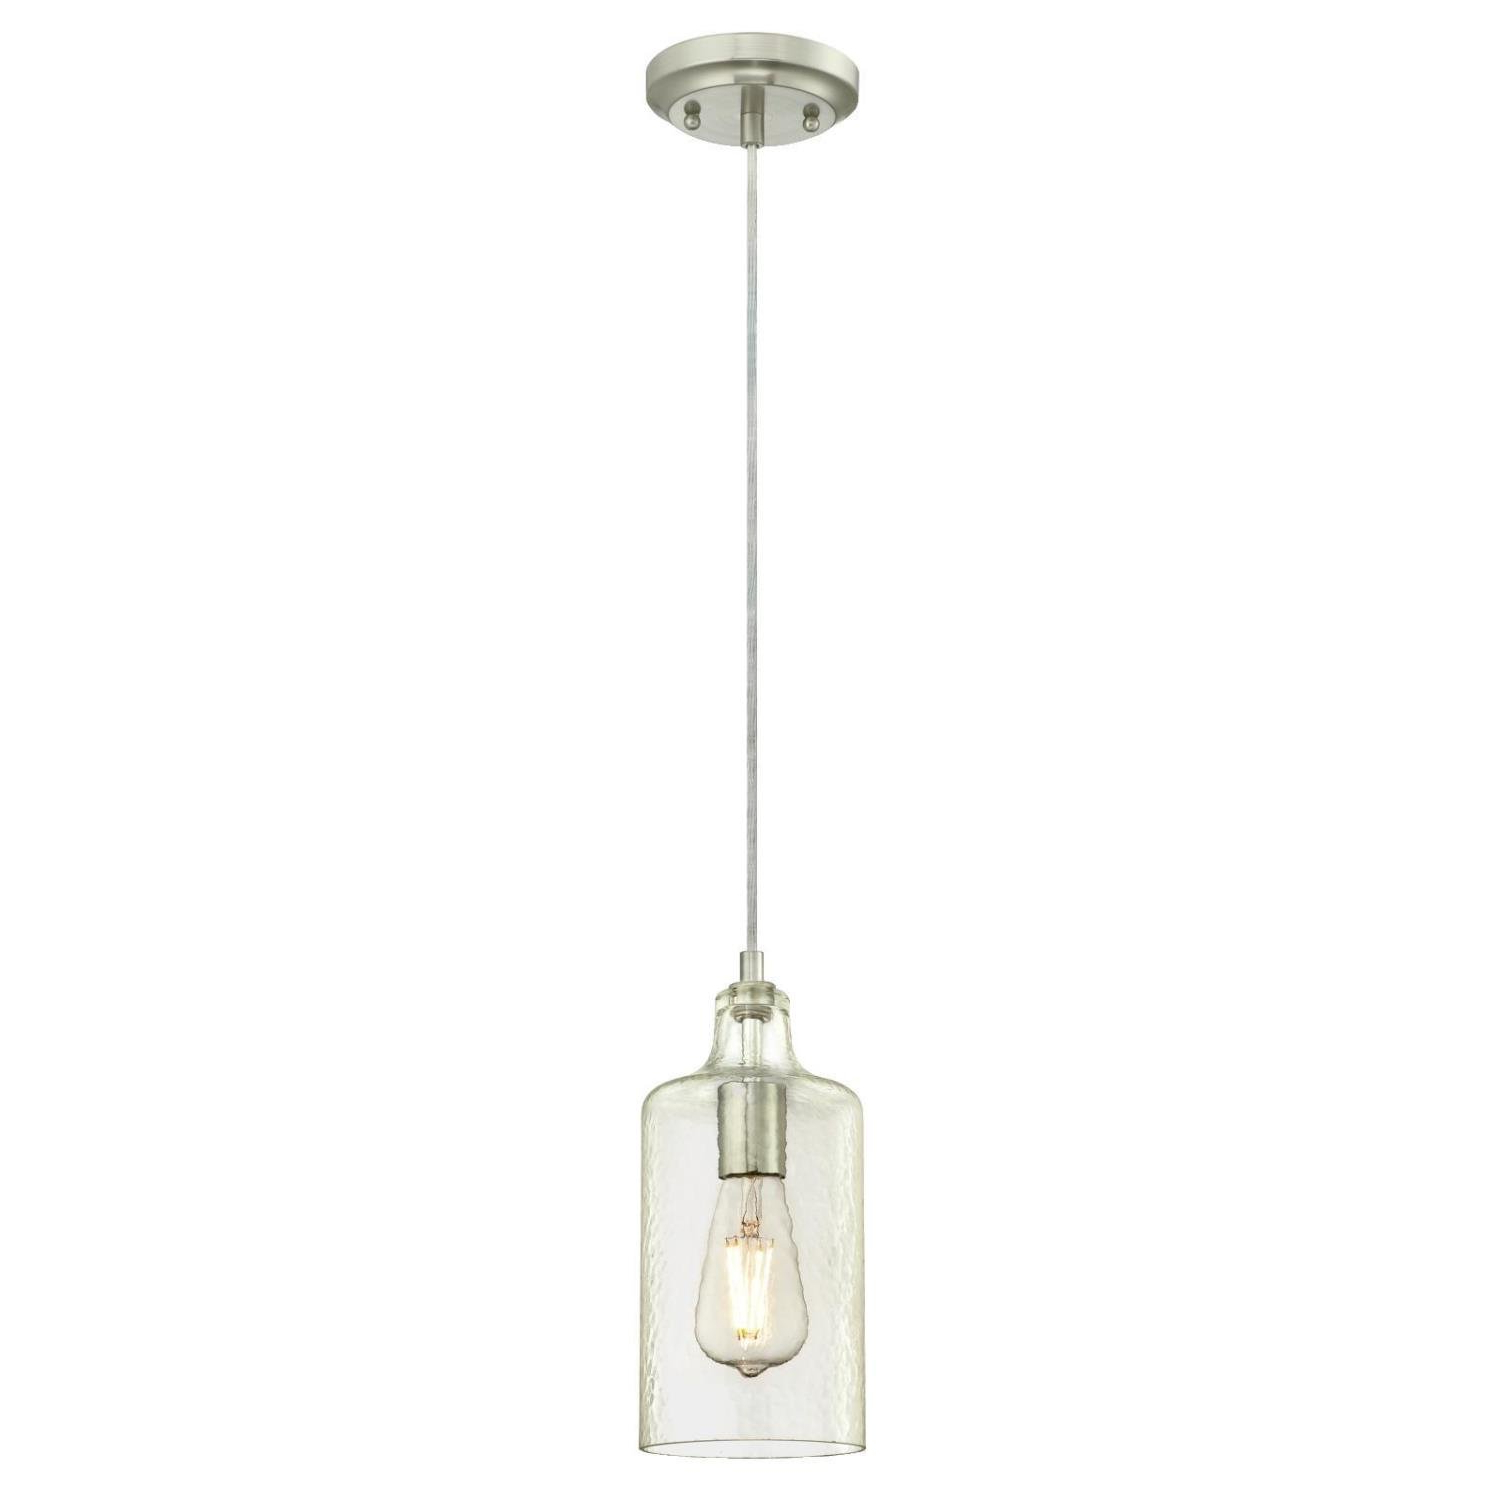 Jayce 1 Light Cylinder Pendant Intended For Well Known Moyer 1 Light Single Cylinder Pendants (View 25 of 25)